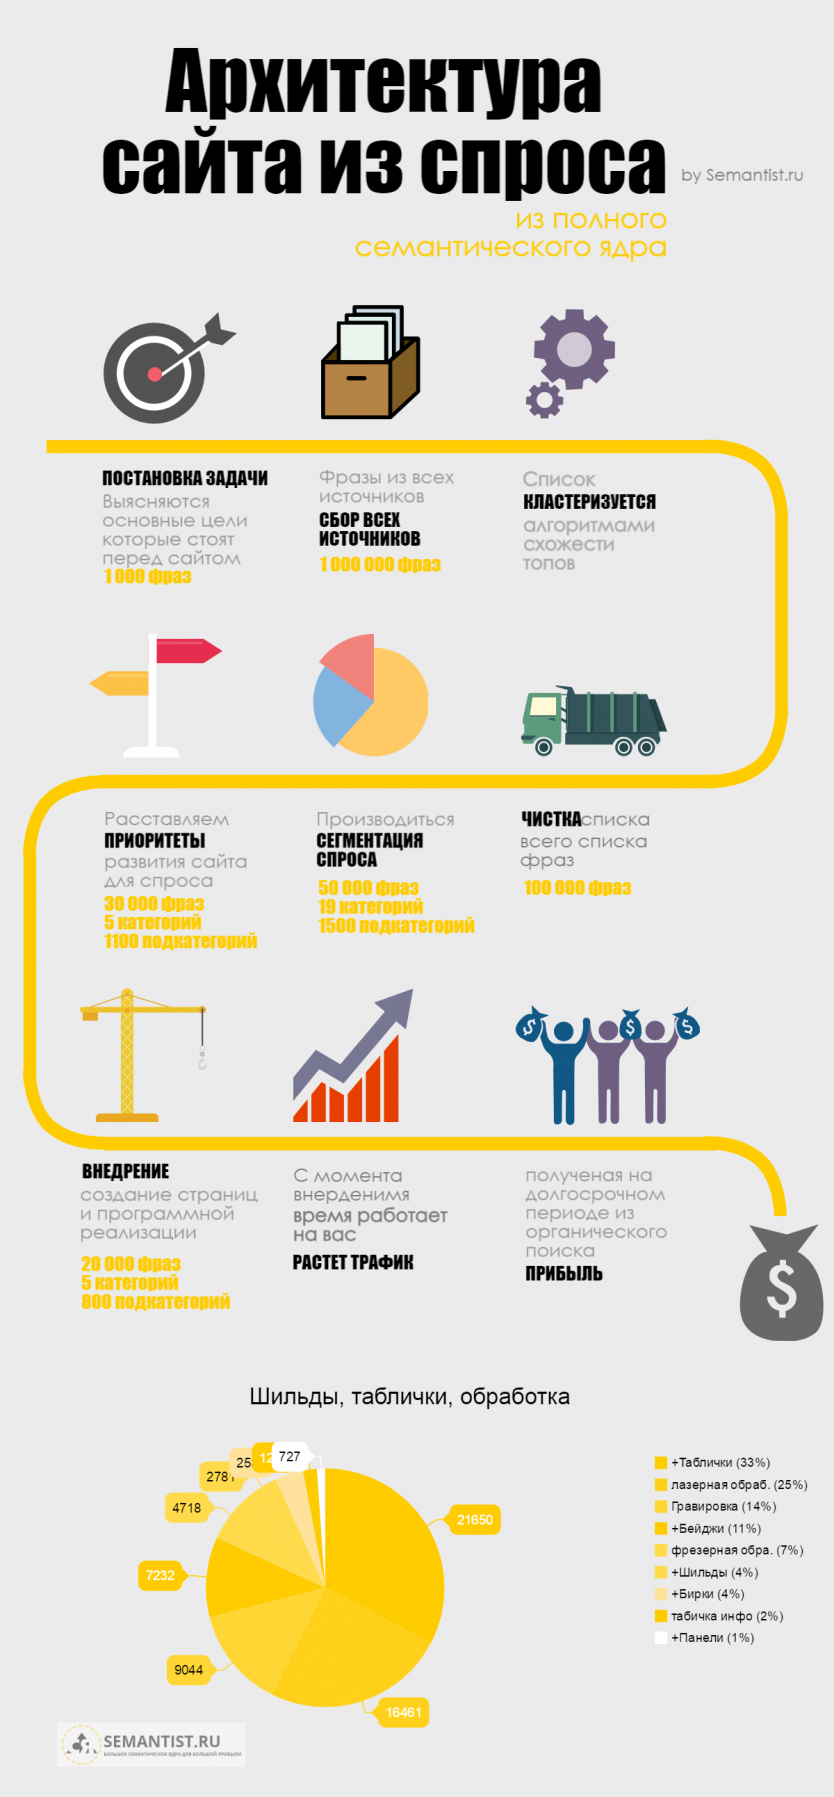 semantist.ru process infographic